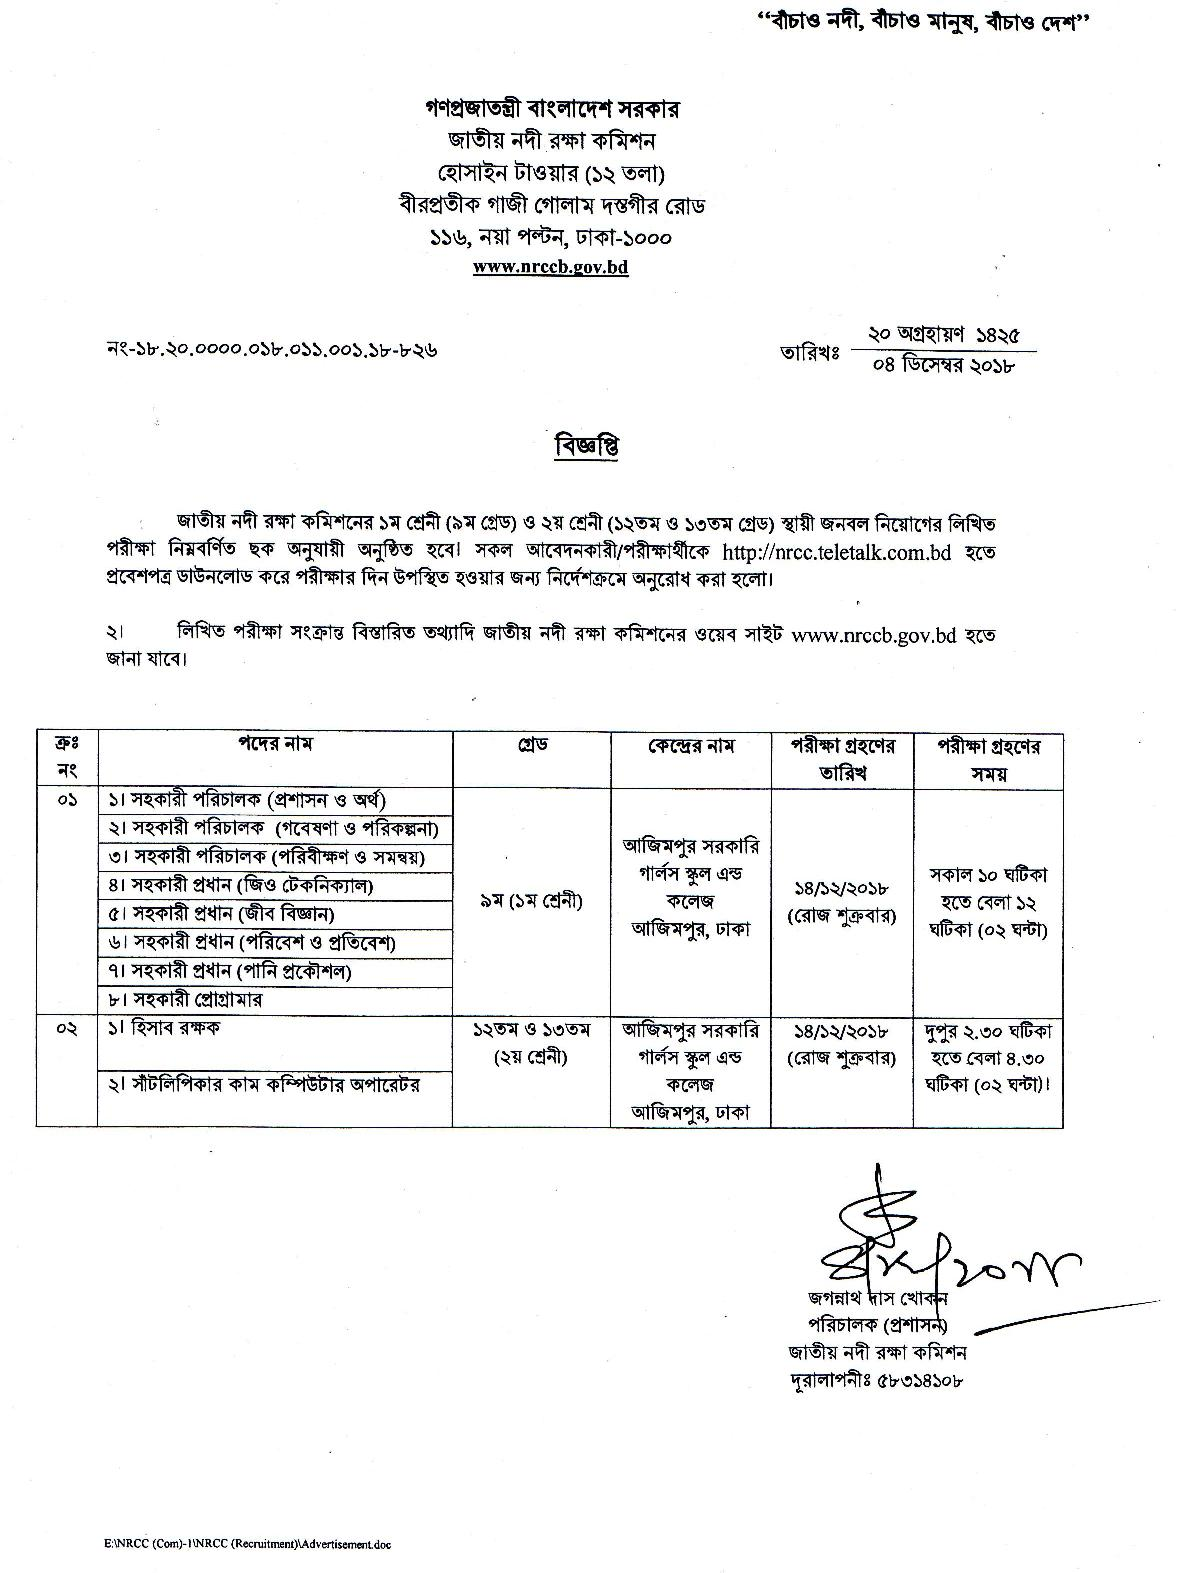 NRCC Admit Exam Date Result 2018